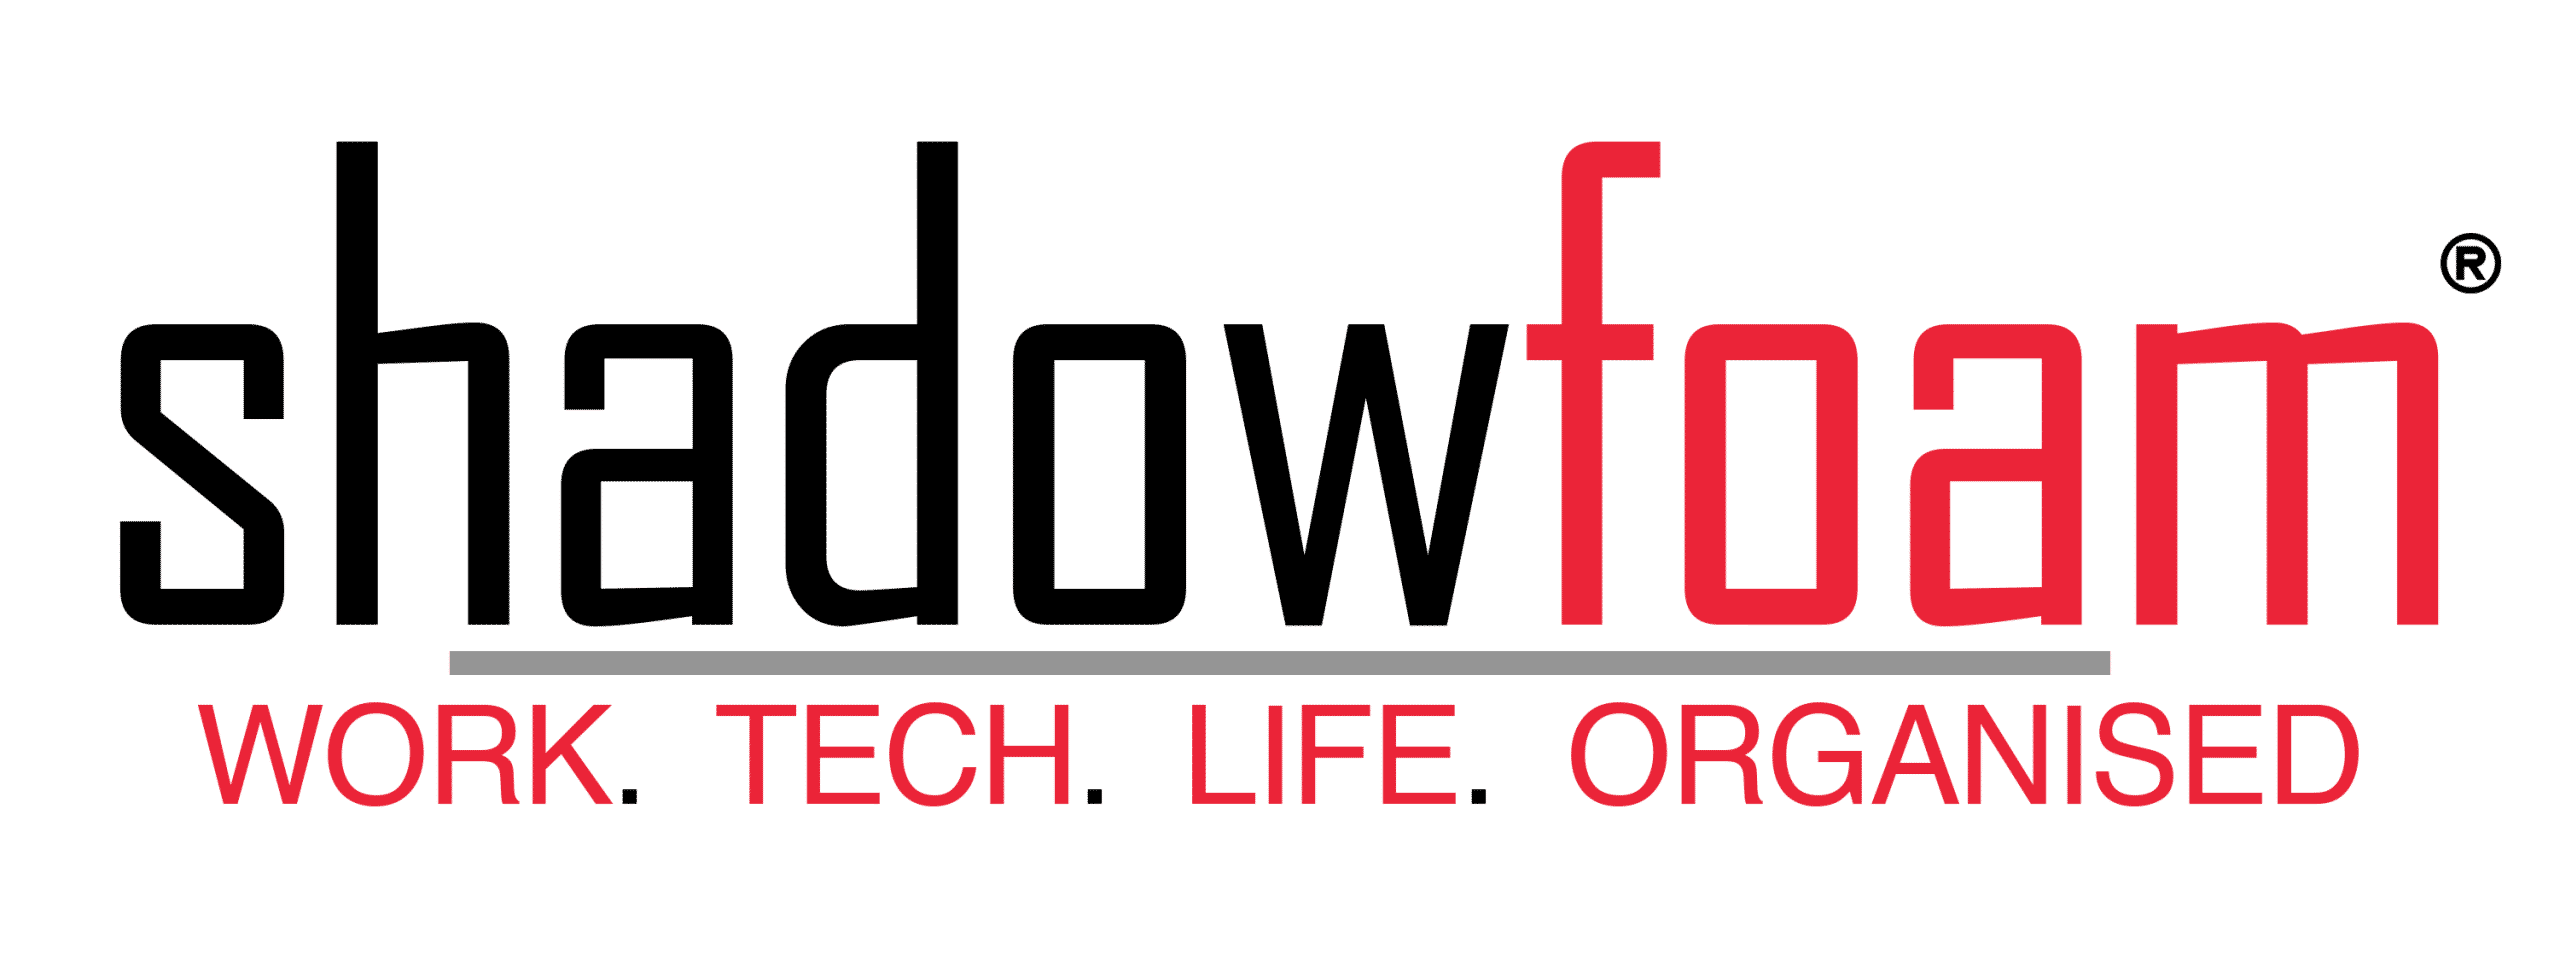 Shadow Foam Logo